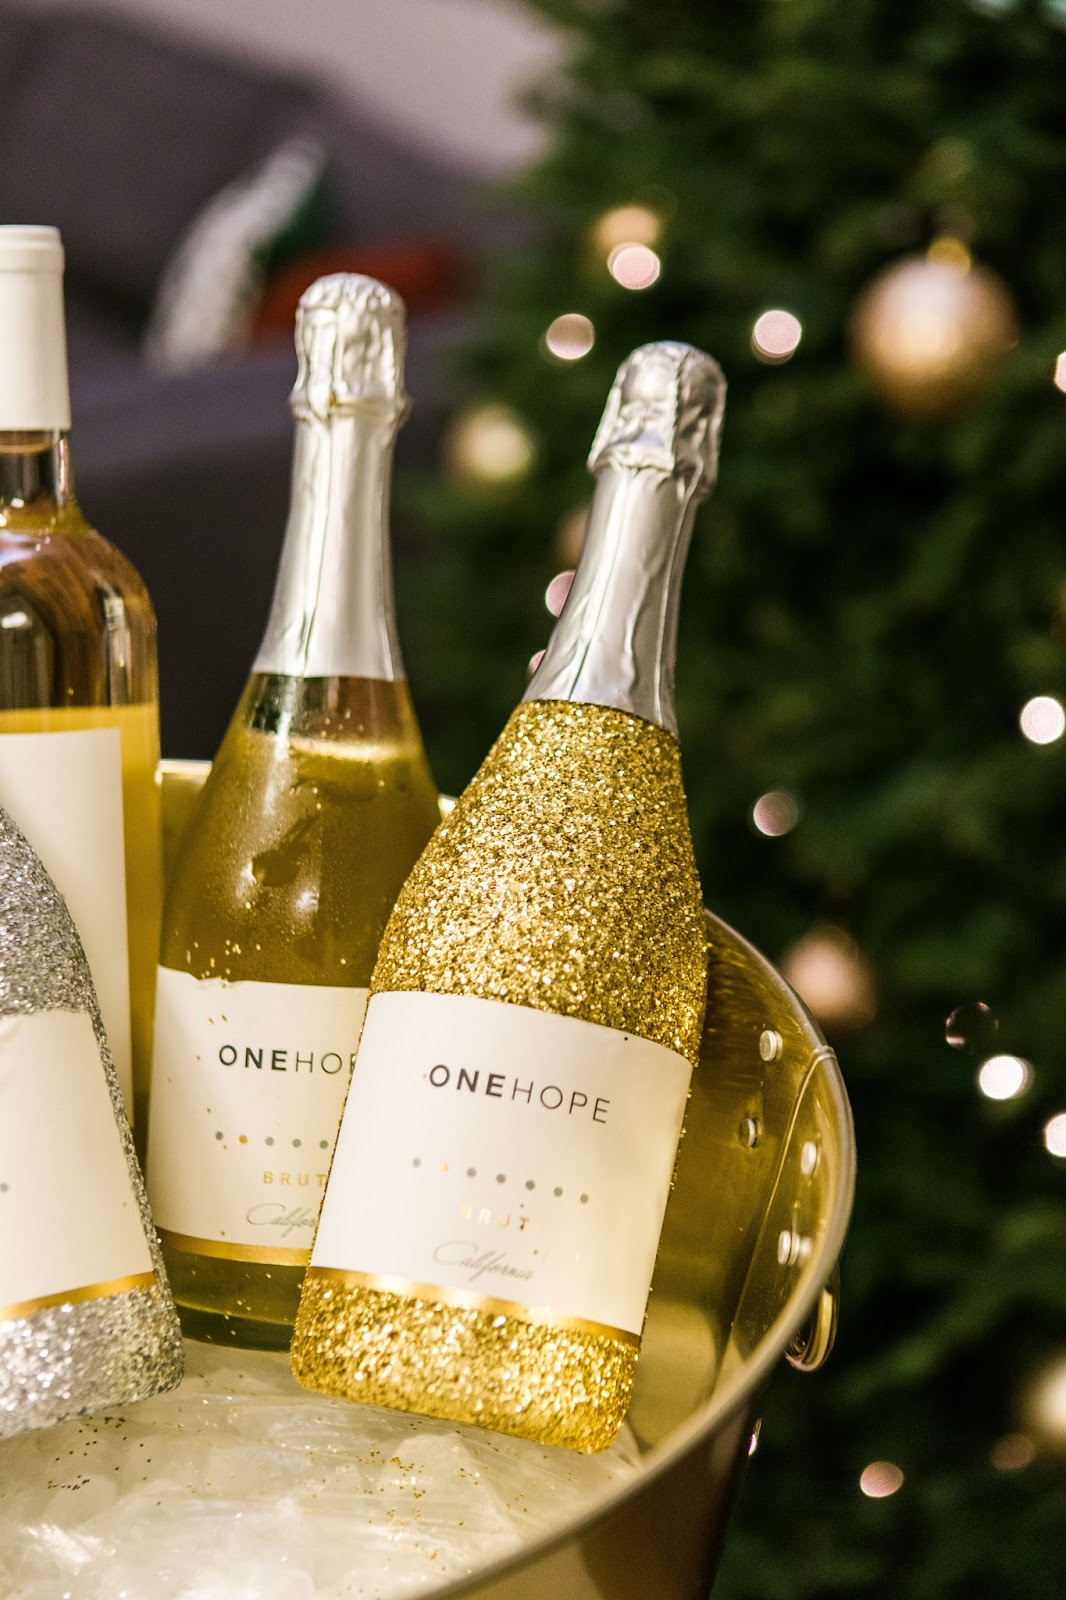 one hope glitter champagne, glitter, nye champagne, pop bottles